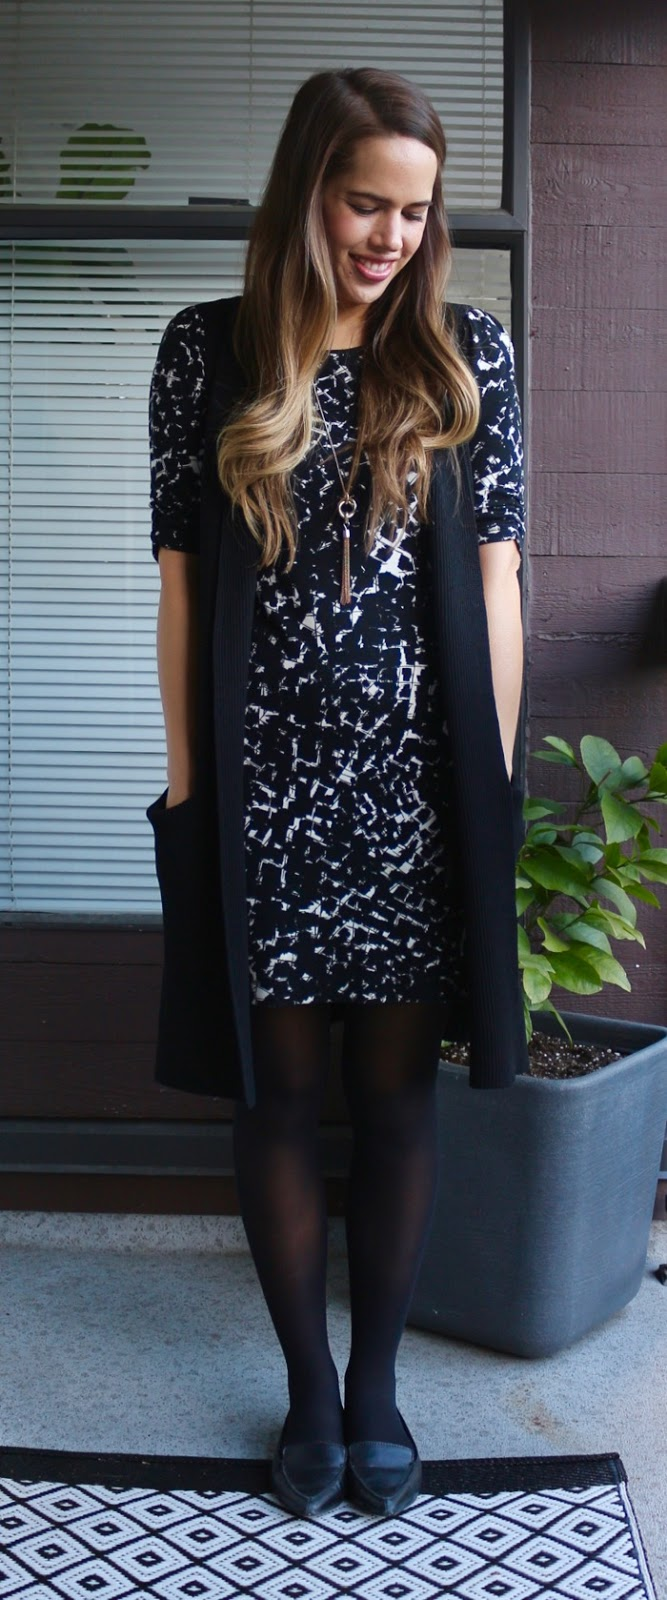 Jules in Flats - Abstract Print Dress with Sweater Vest for Work